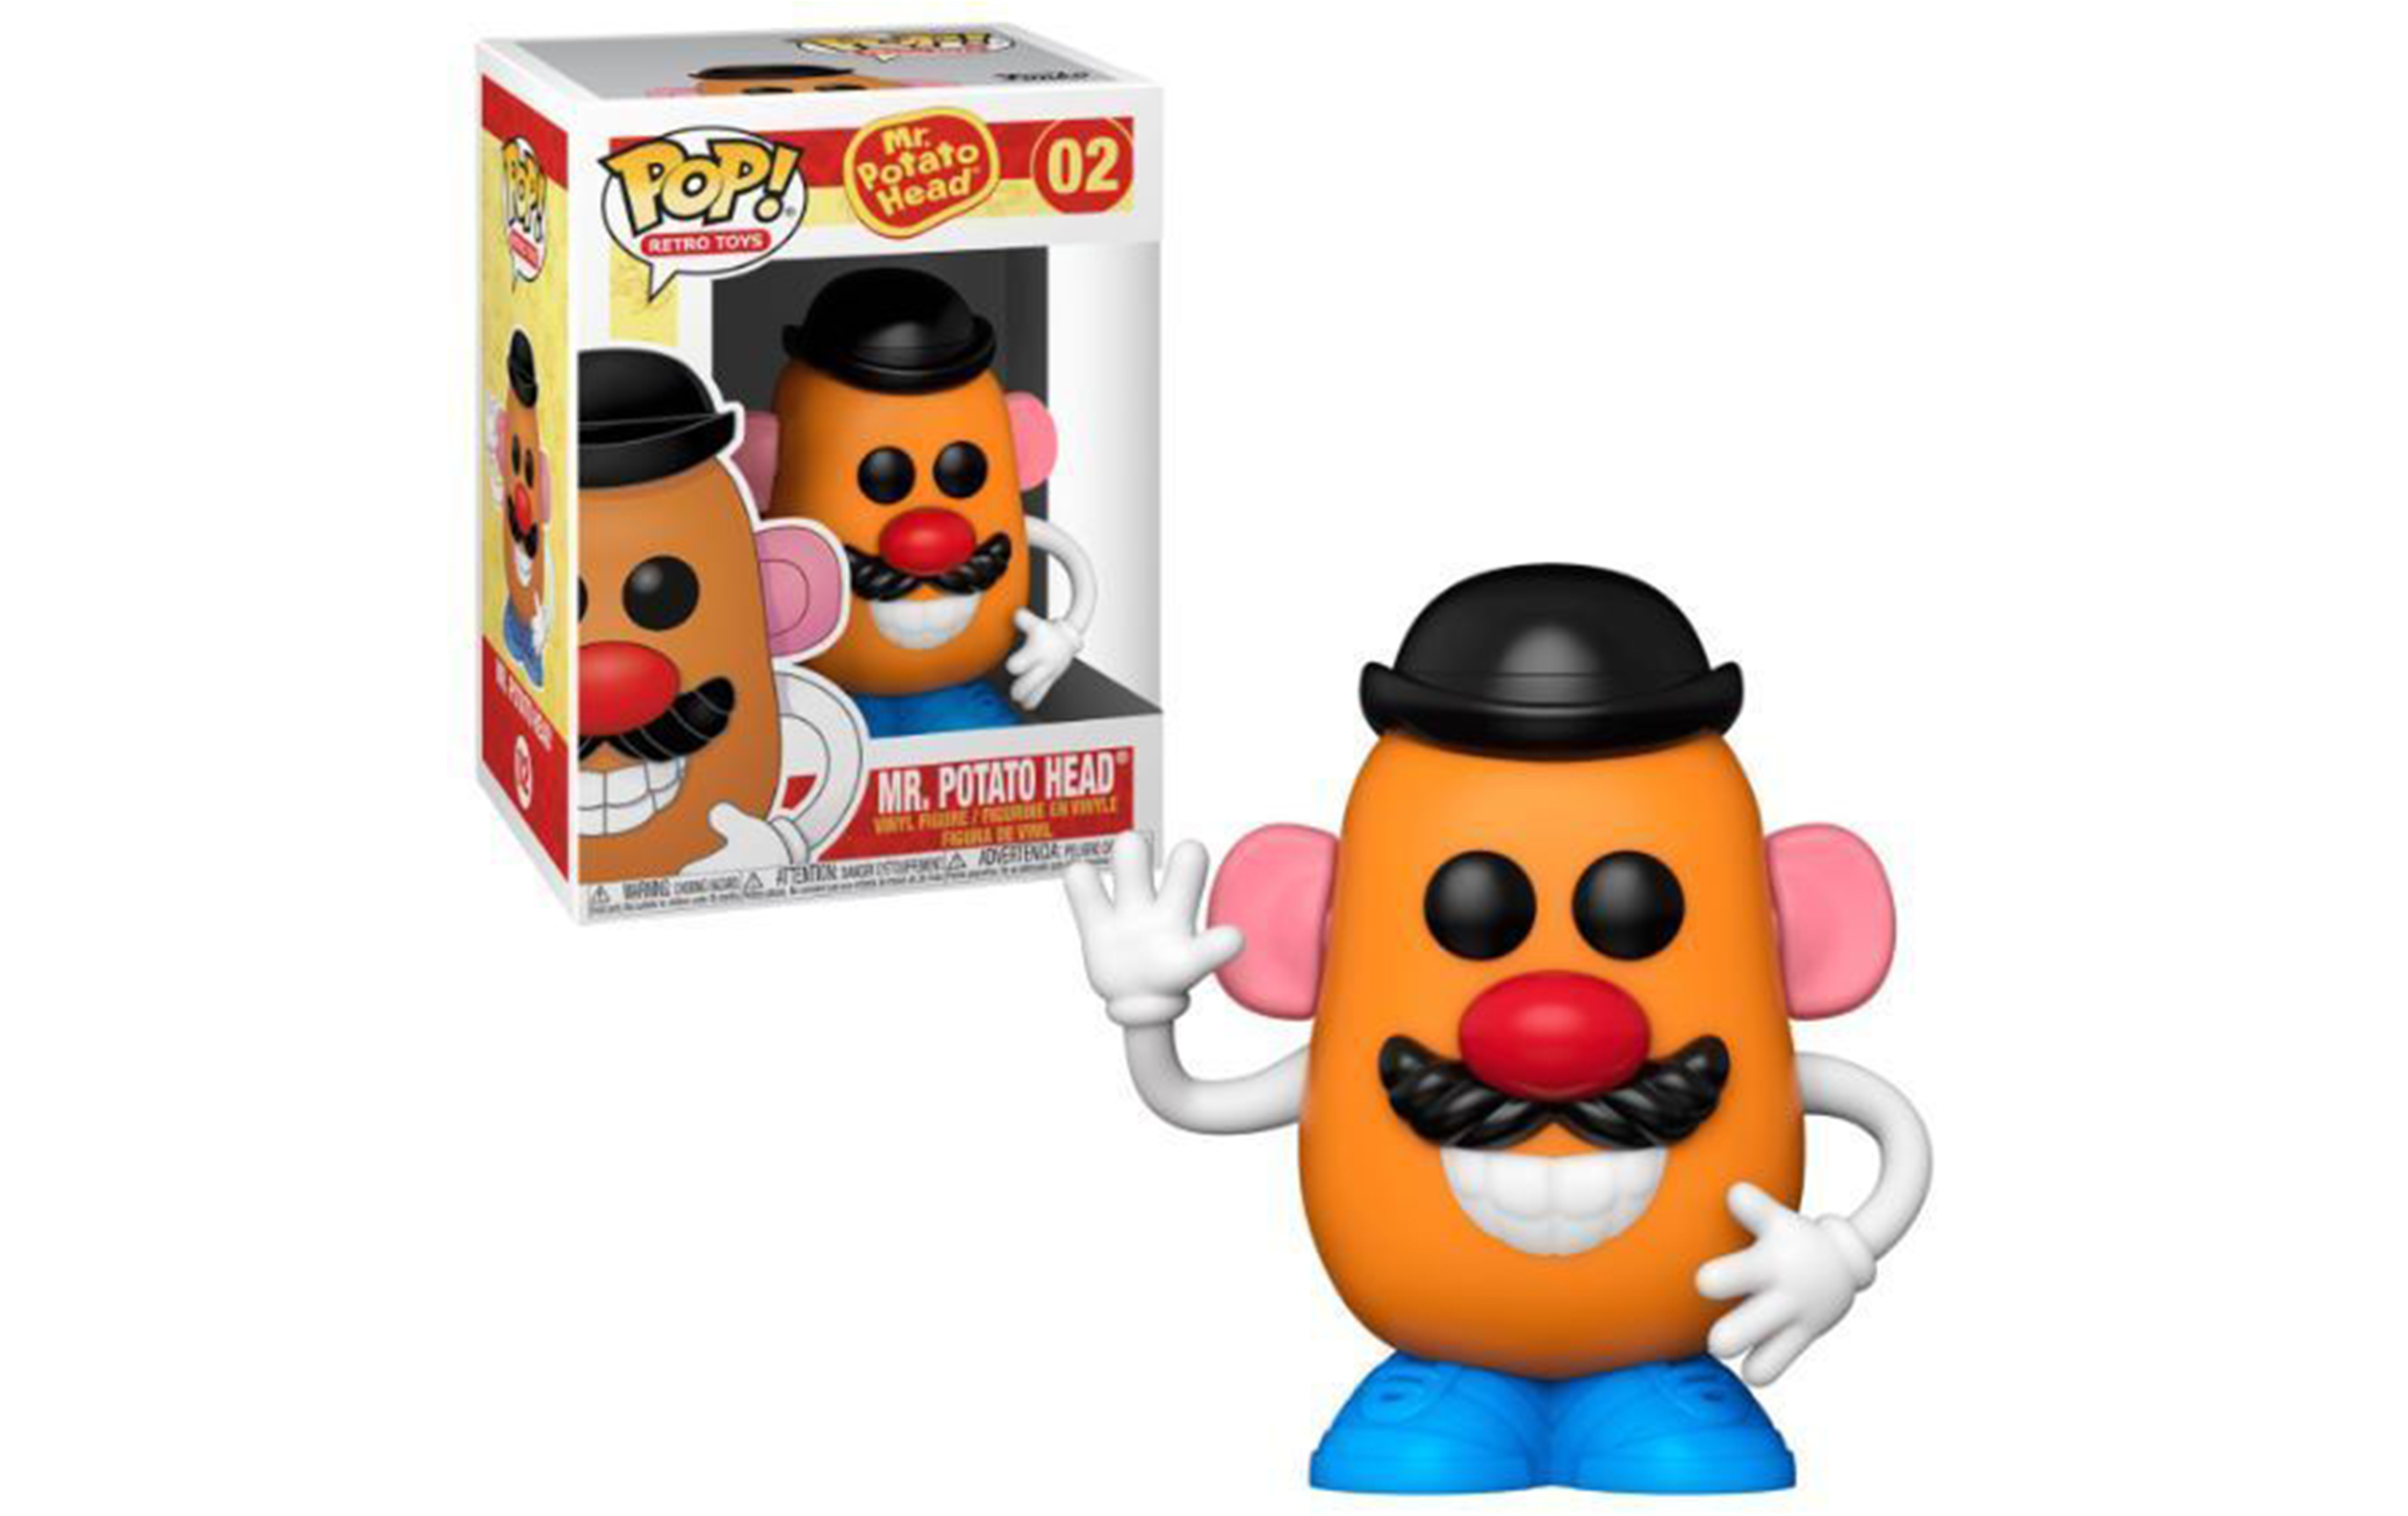 Mr. Potato Head 02 Funko POP Vinyl Figure